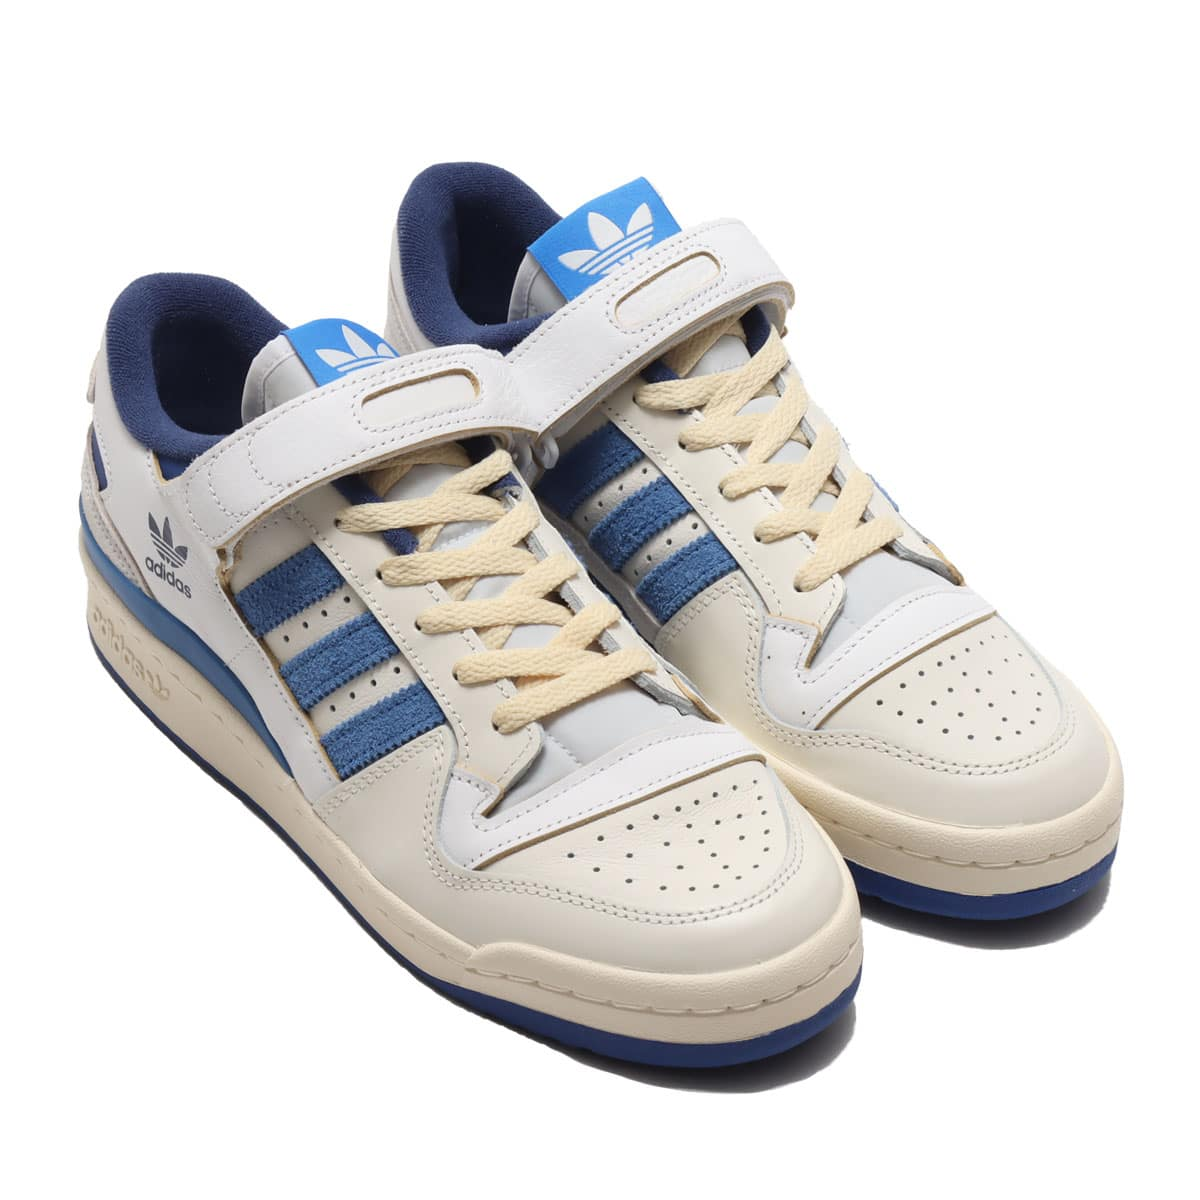 adidas FORUM 84 LOW BLUE THREAD FOOTWEAR WHITE/TEAM ROYAL BLUE/CREAM WHITE 21SS-S_photo_large